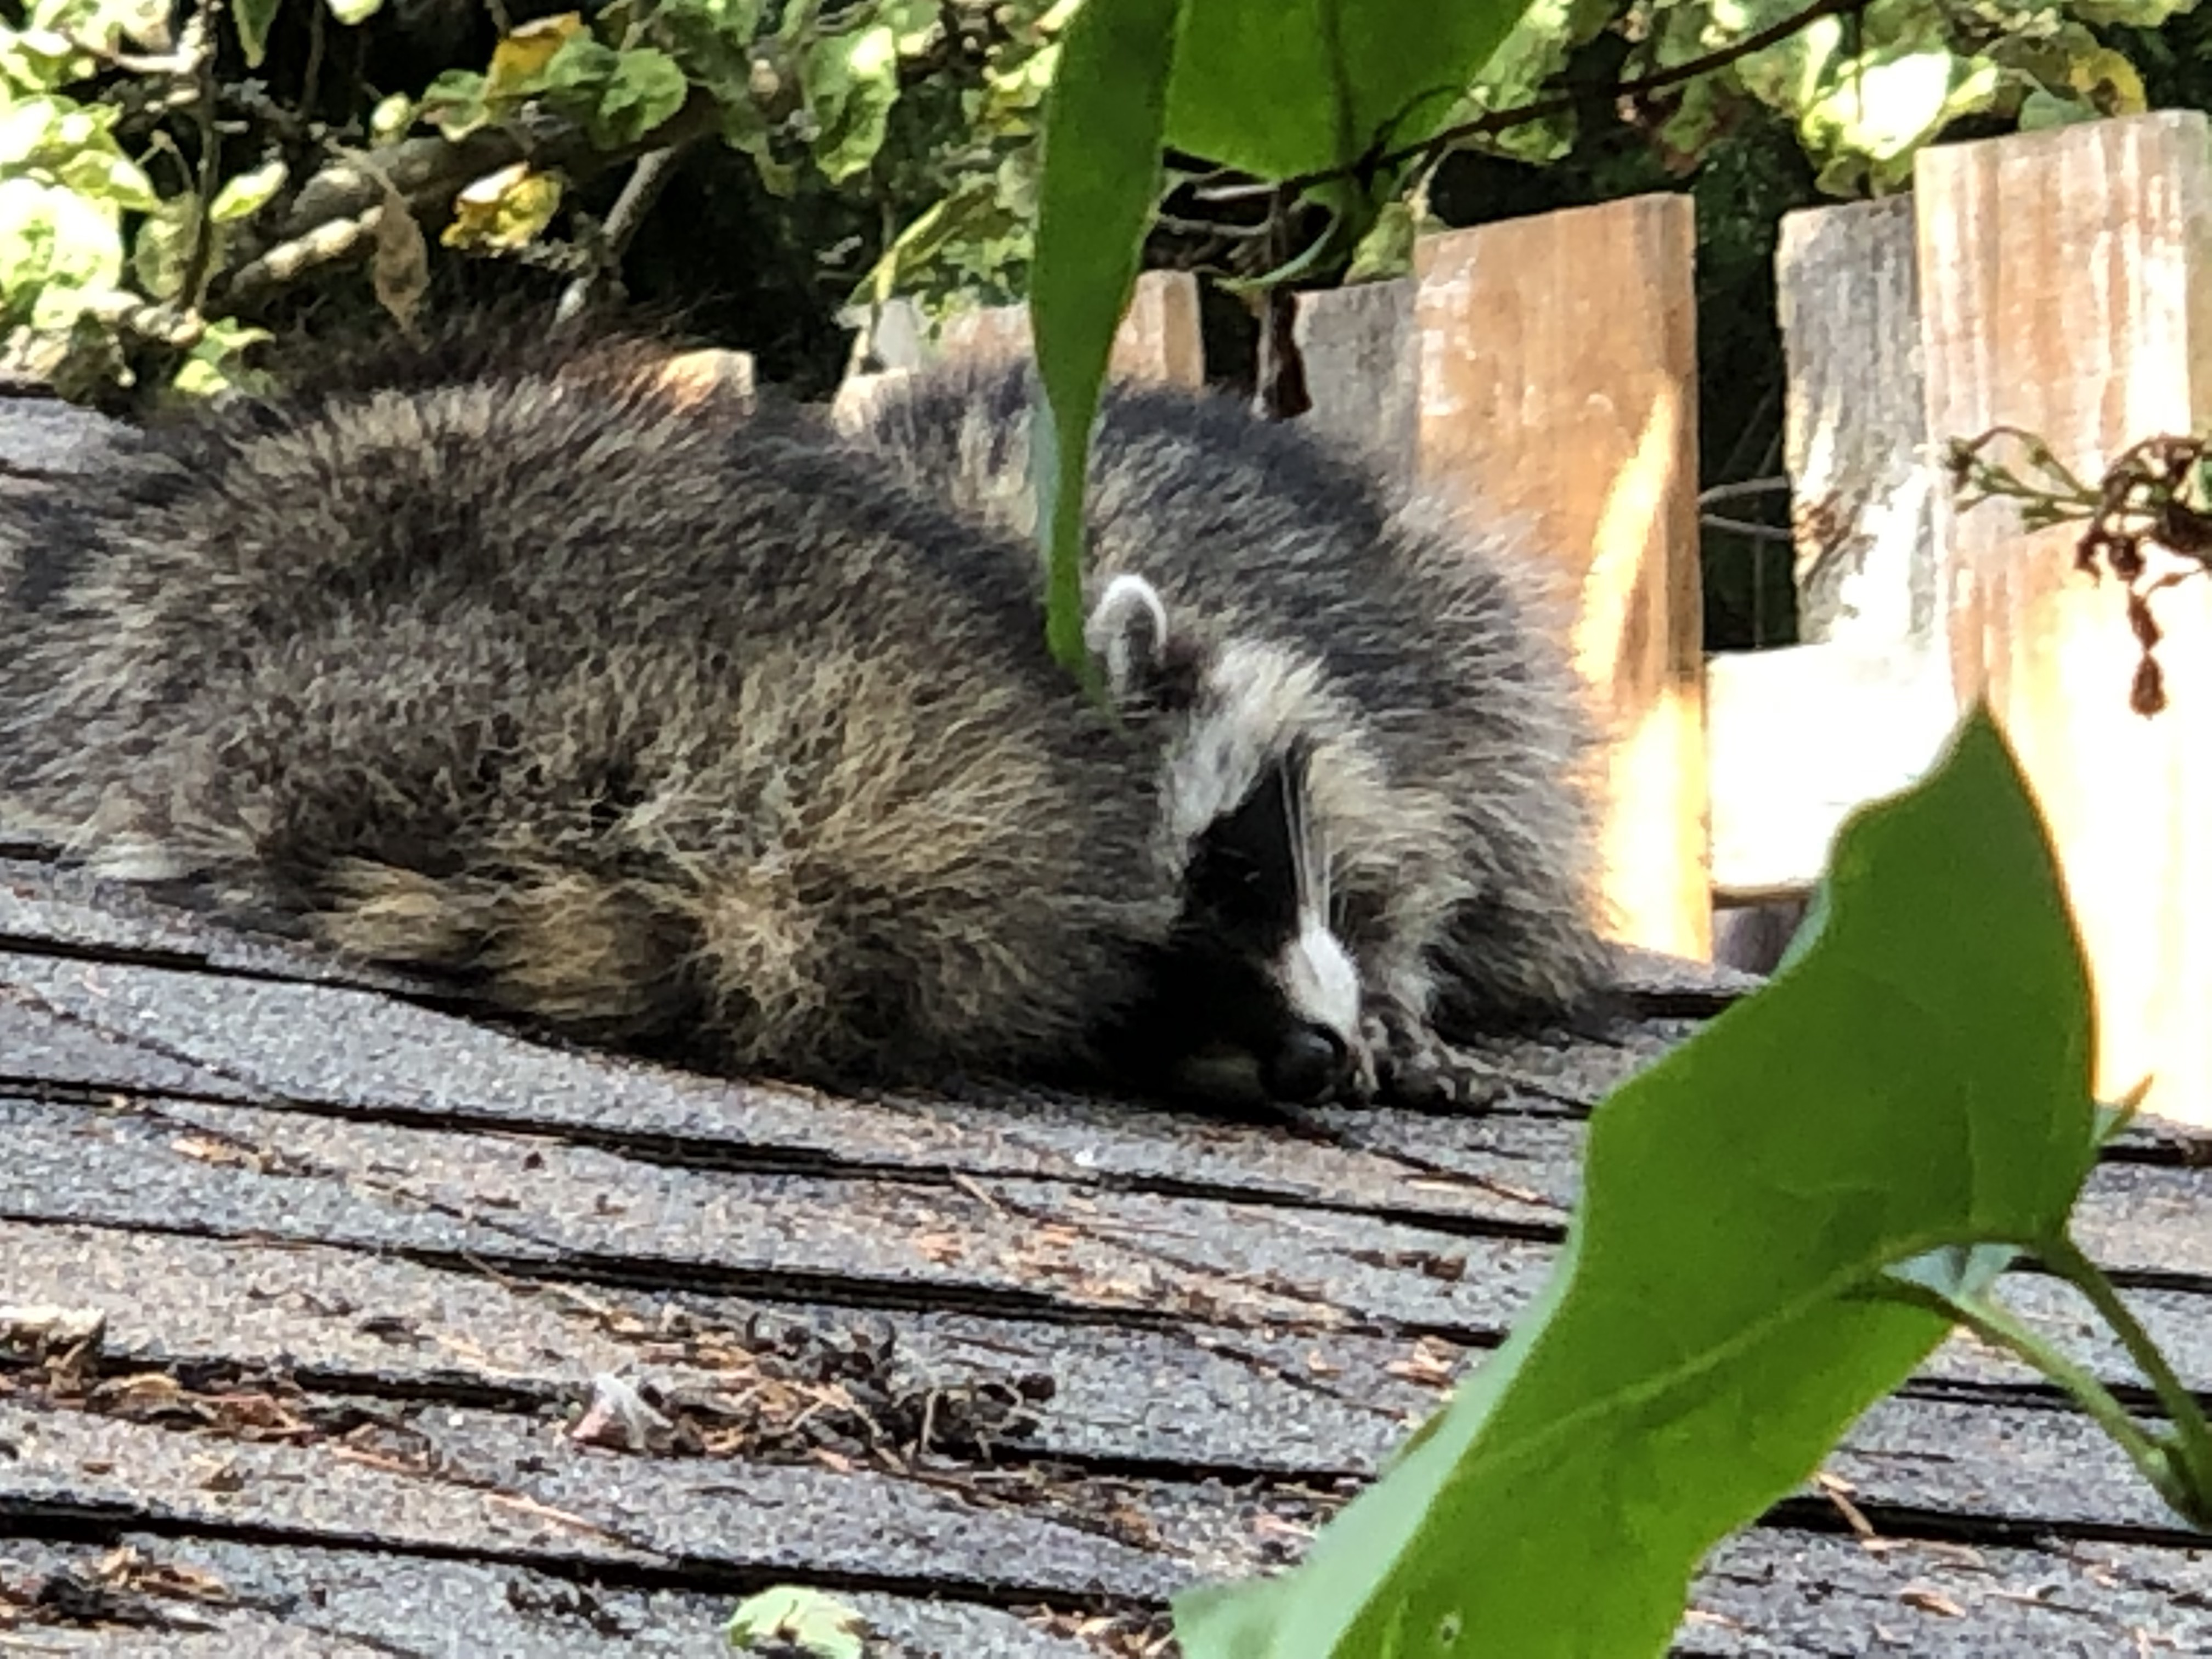 Two raccoons curled up together and sleeping on the roof of a garage.